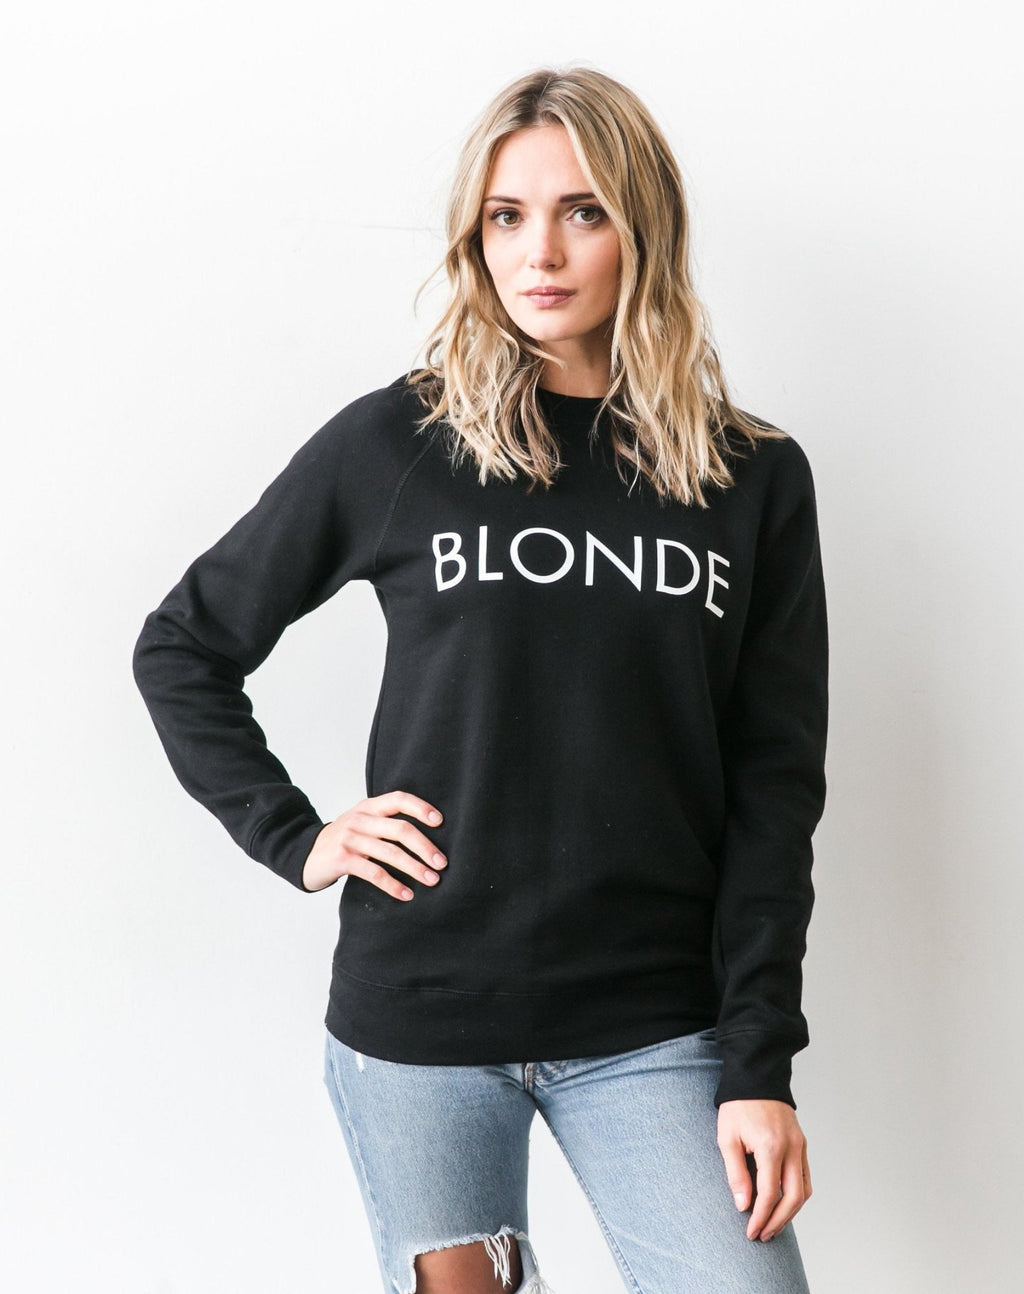 """BLONDE"" Crew Sweater- Black - Sweatshirt - The Valley Boutique - Canada Online Shopping"